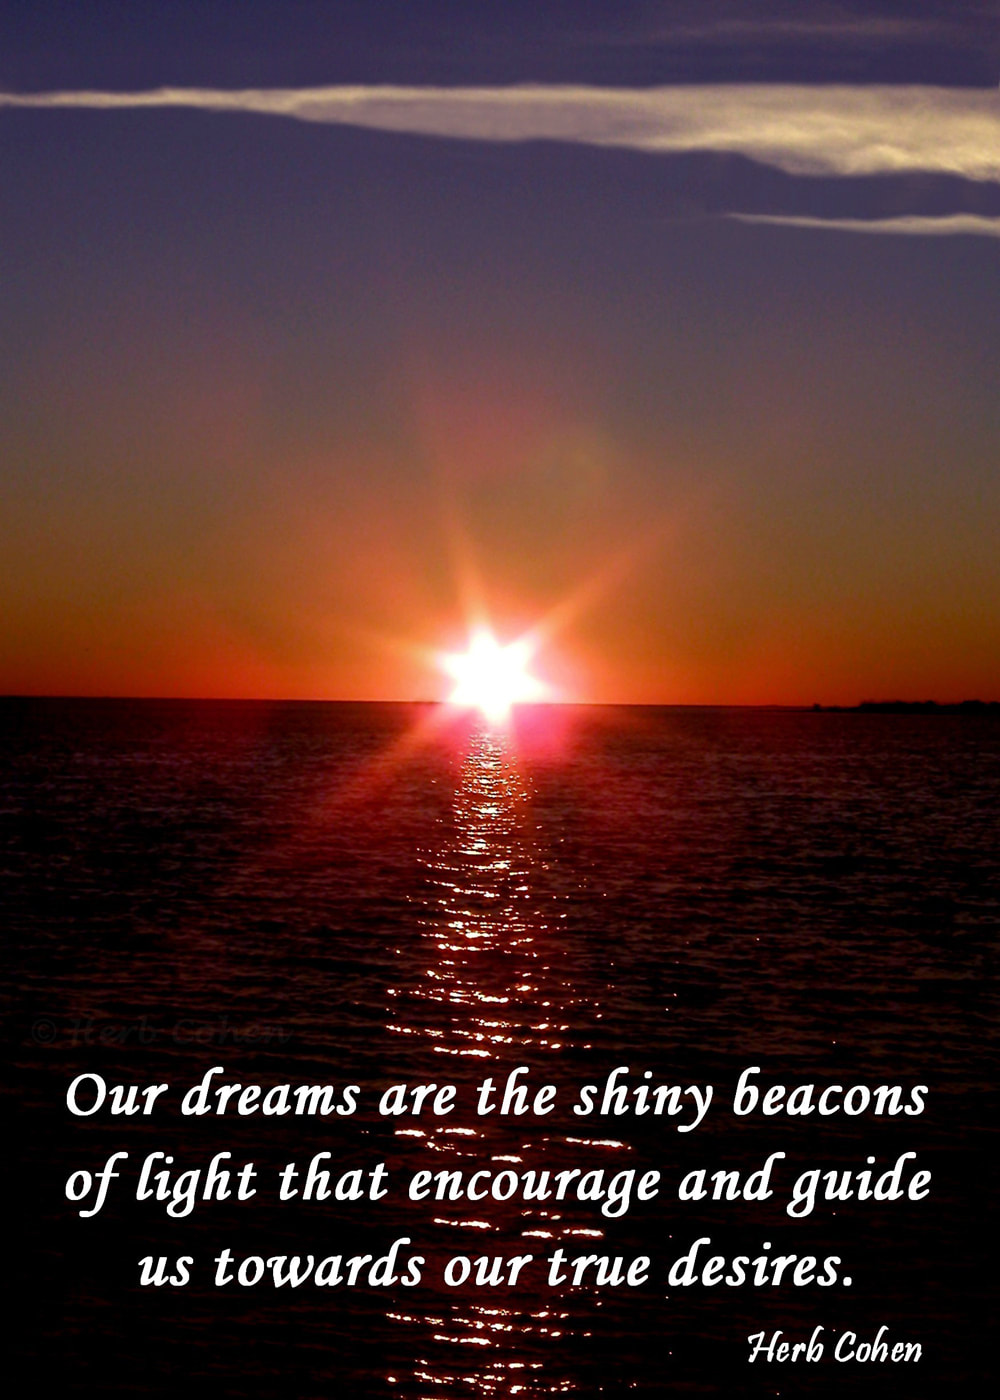 Our dreams are the shiny beacons of light that encourage and guide us towards our true desires